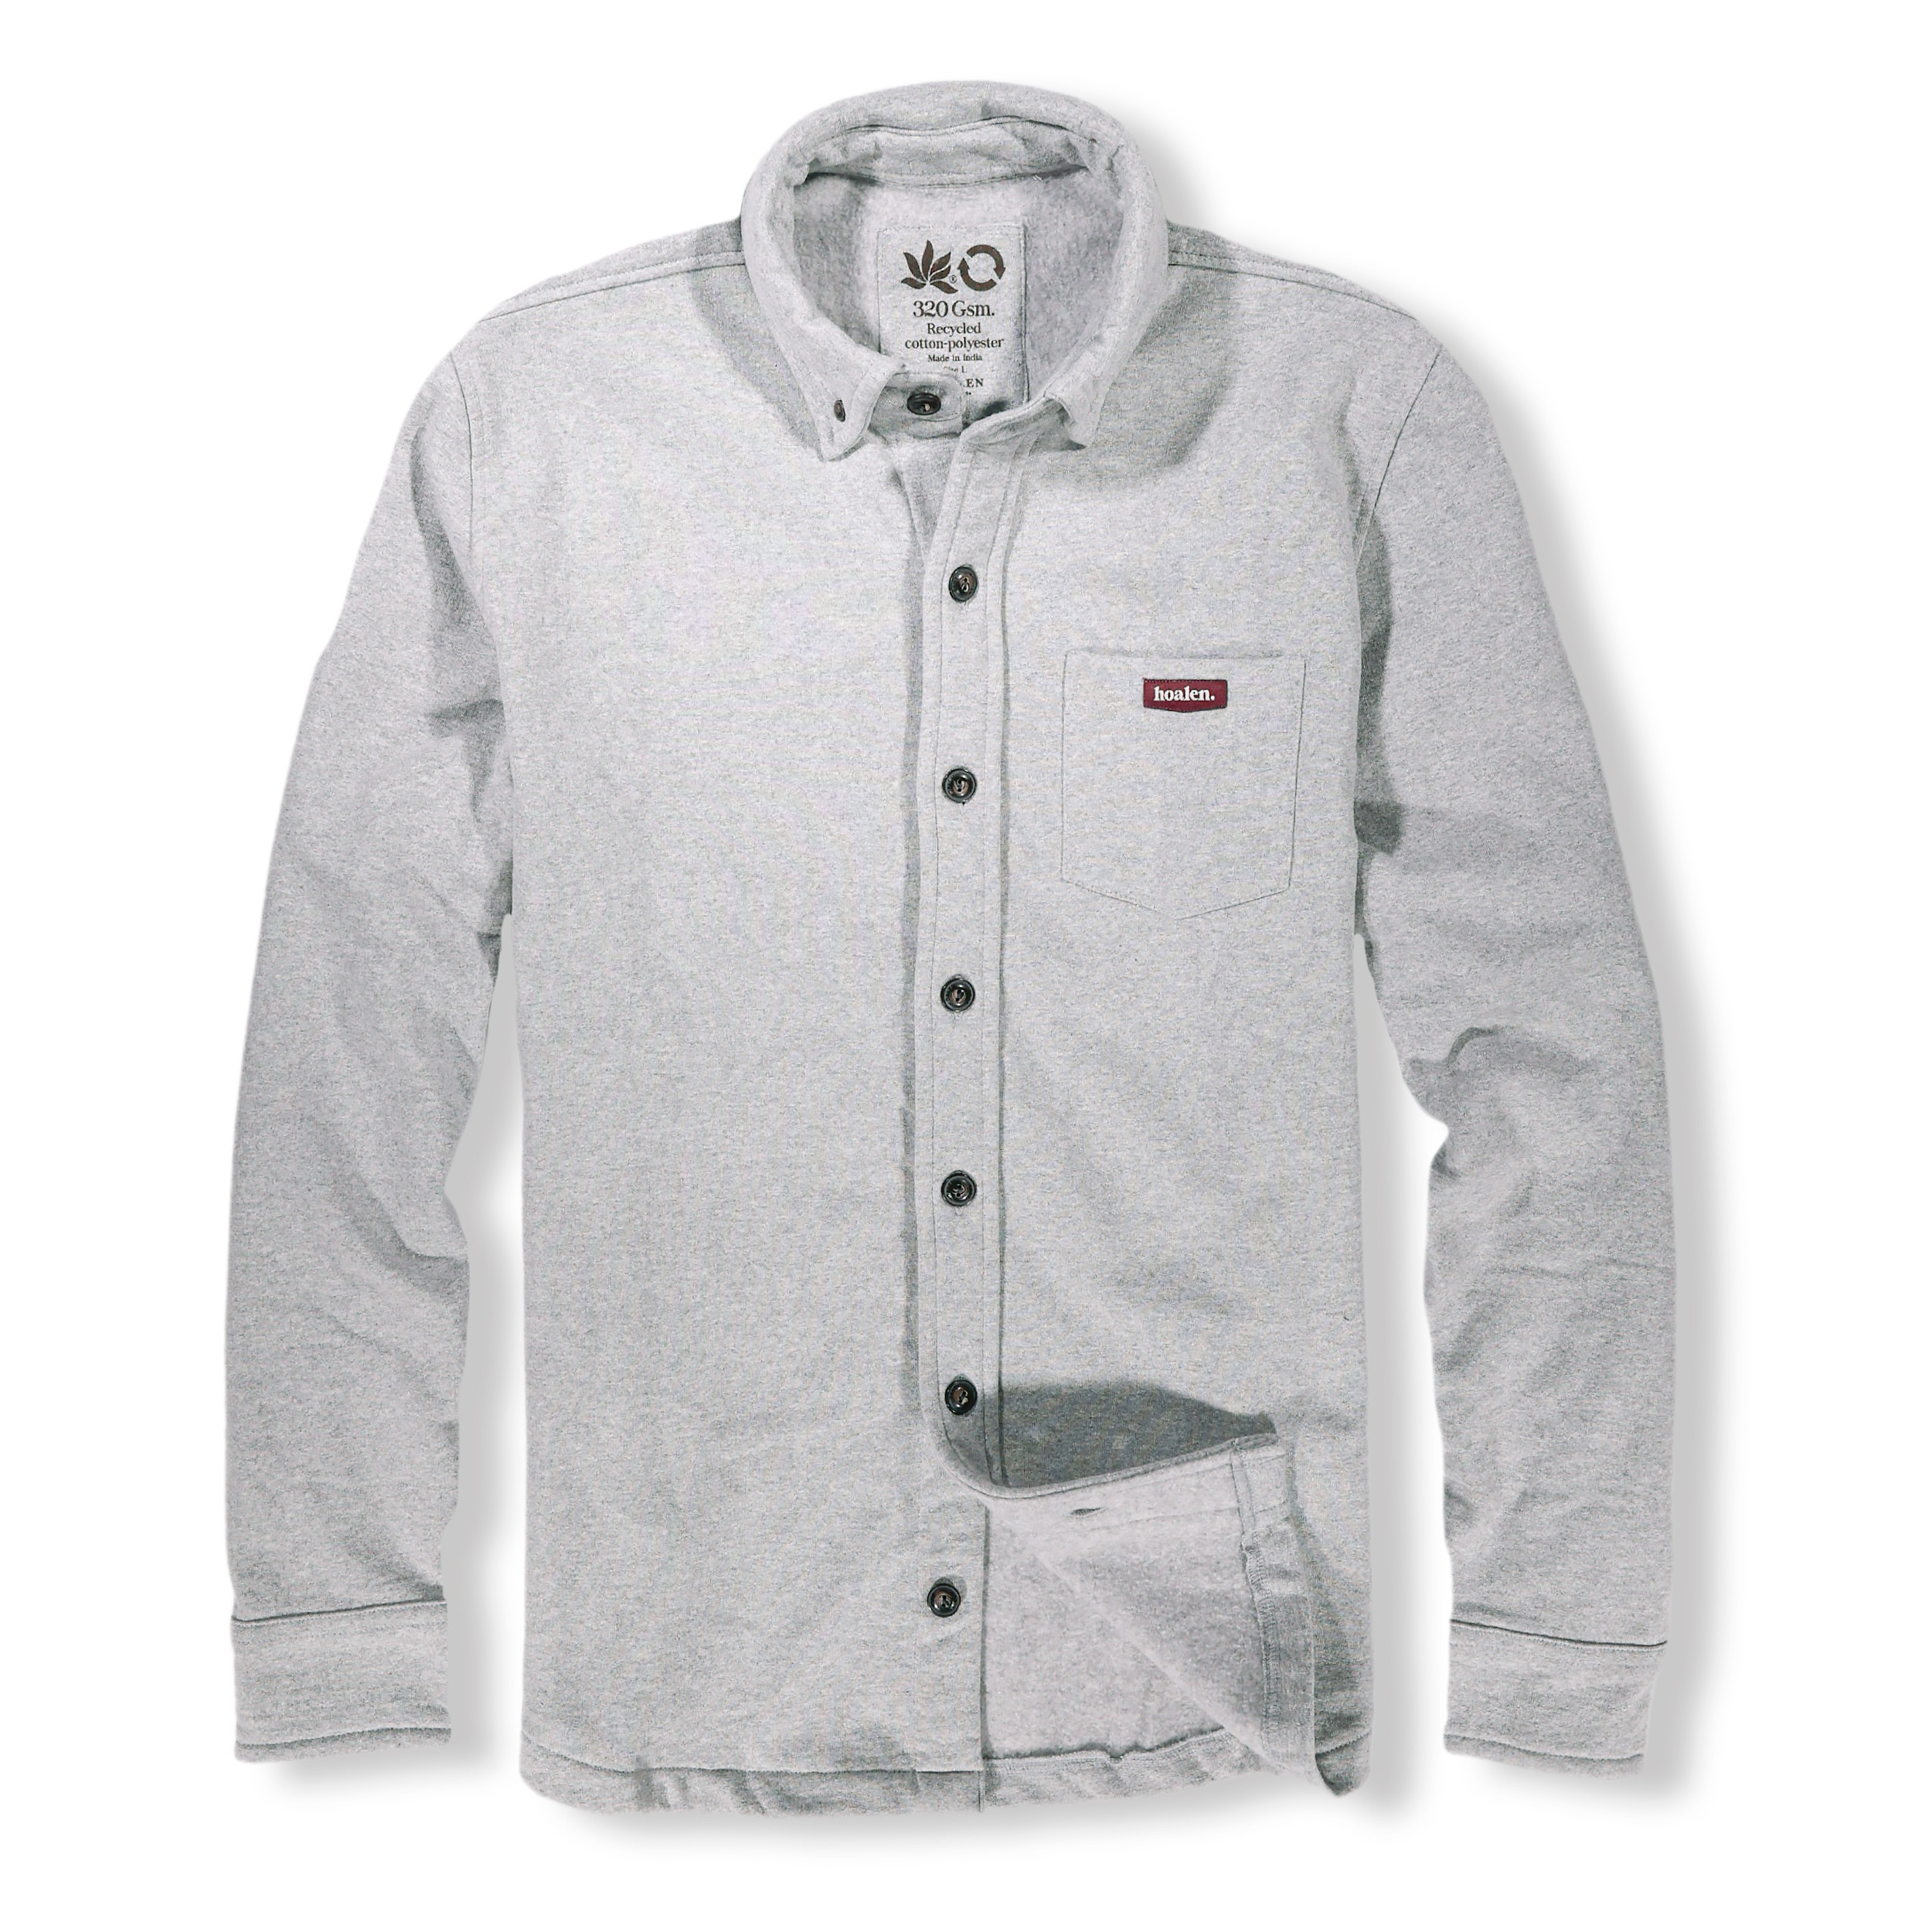 Fleece shirt